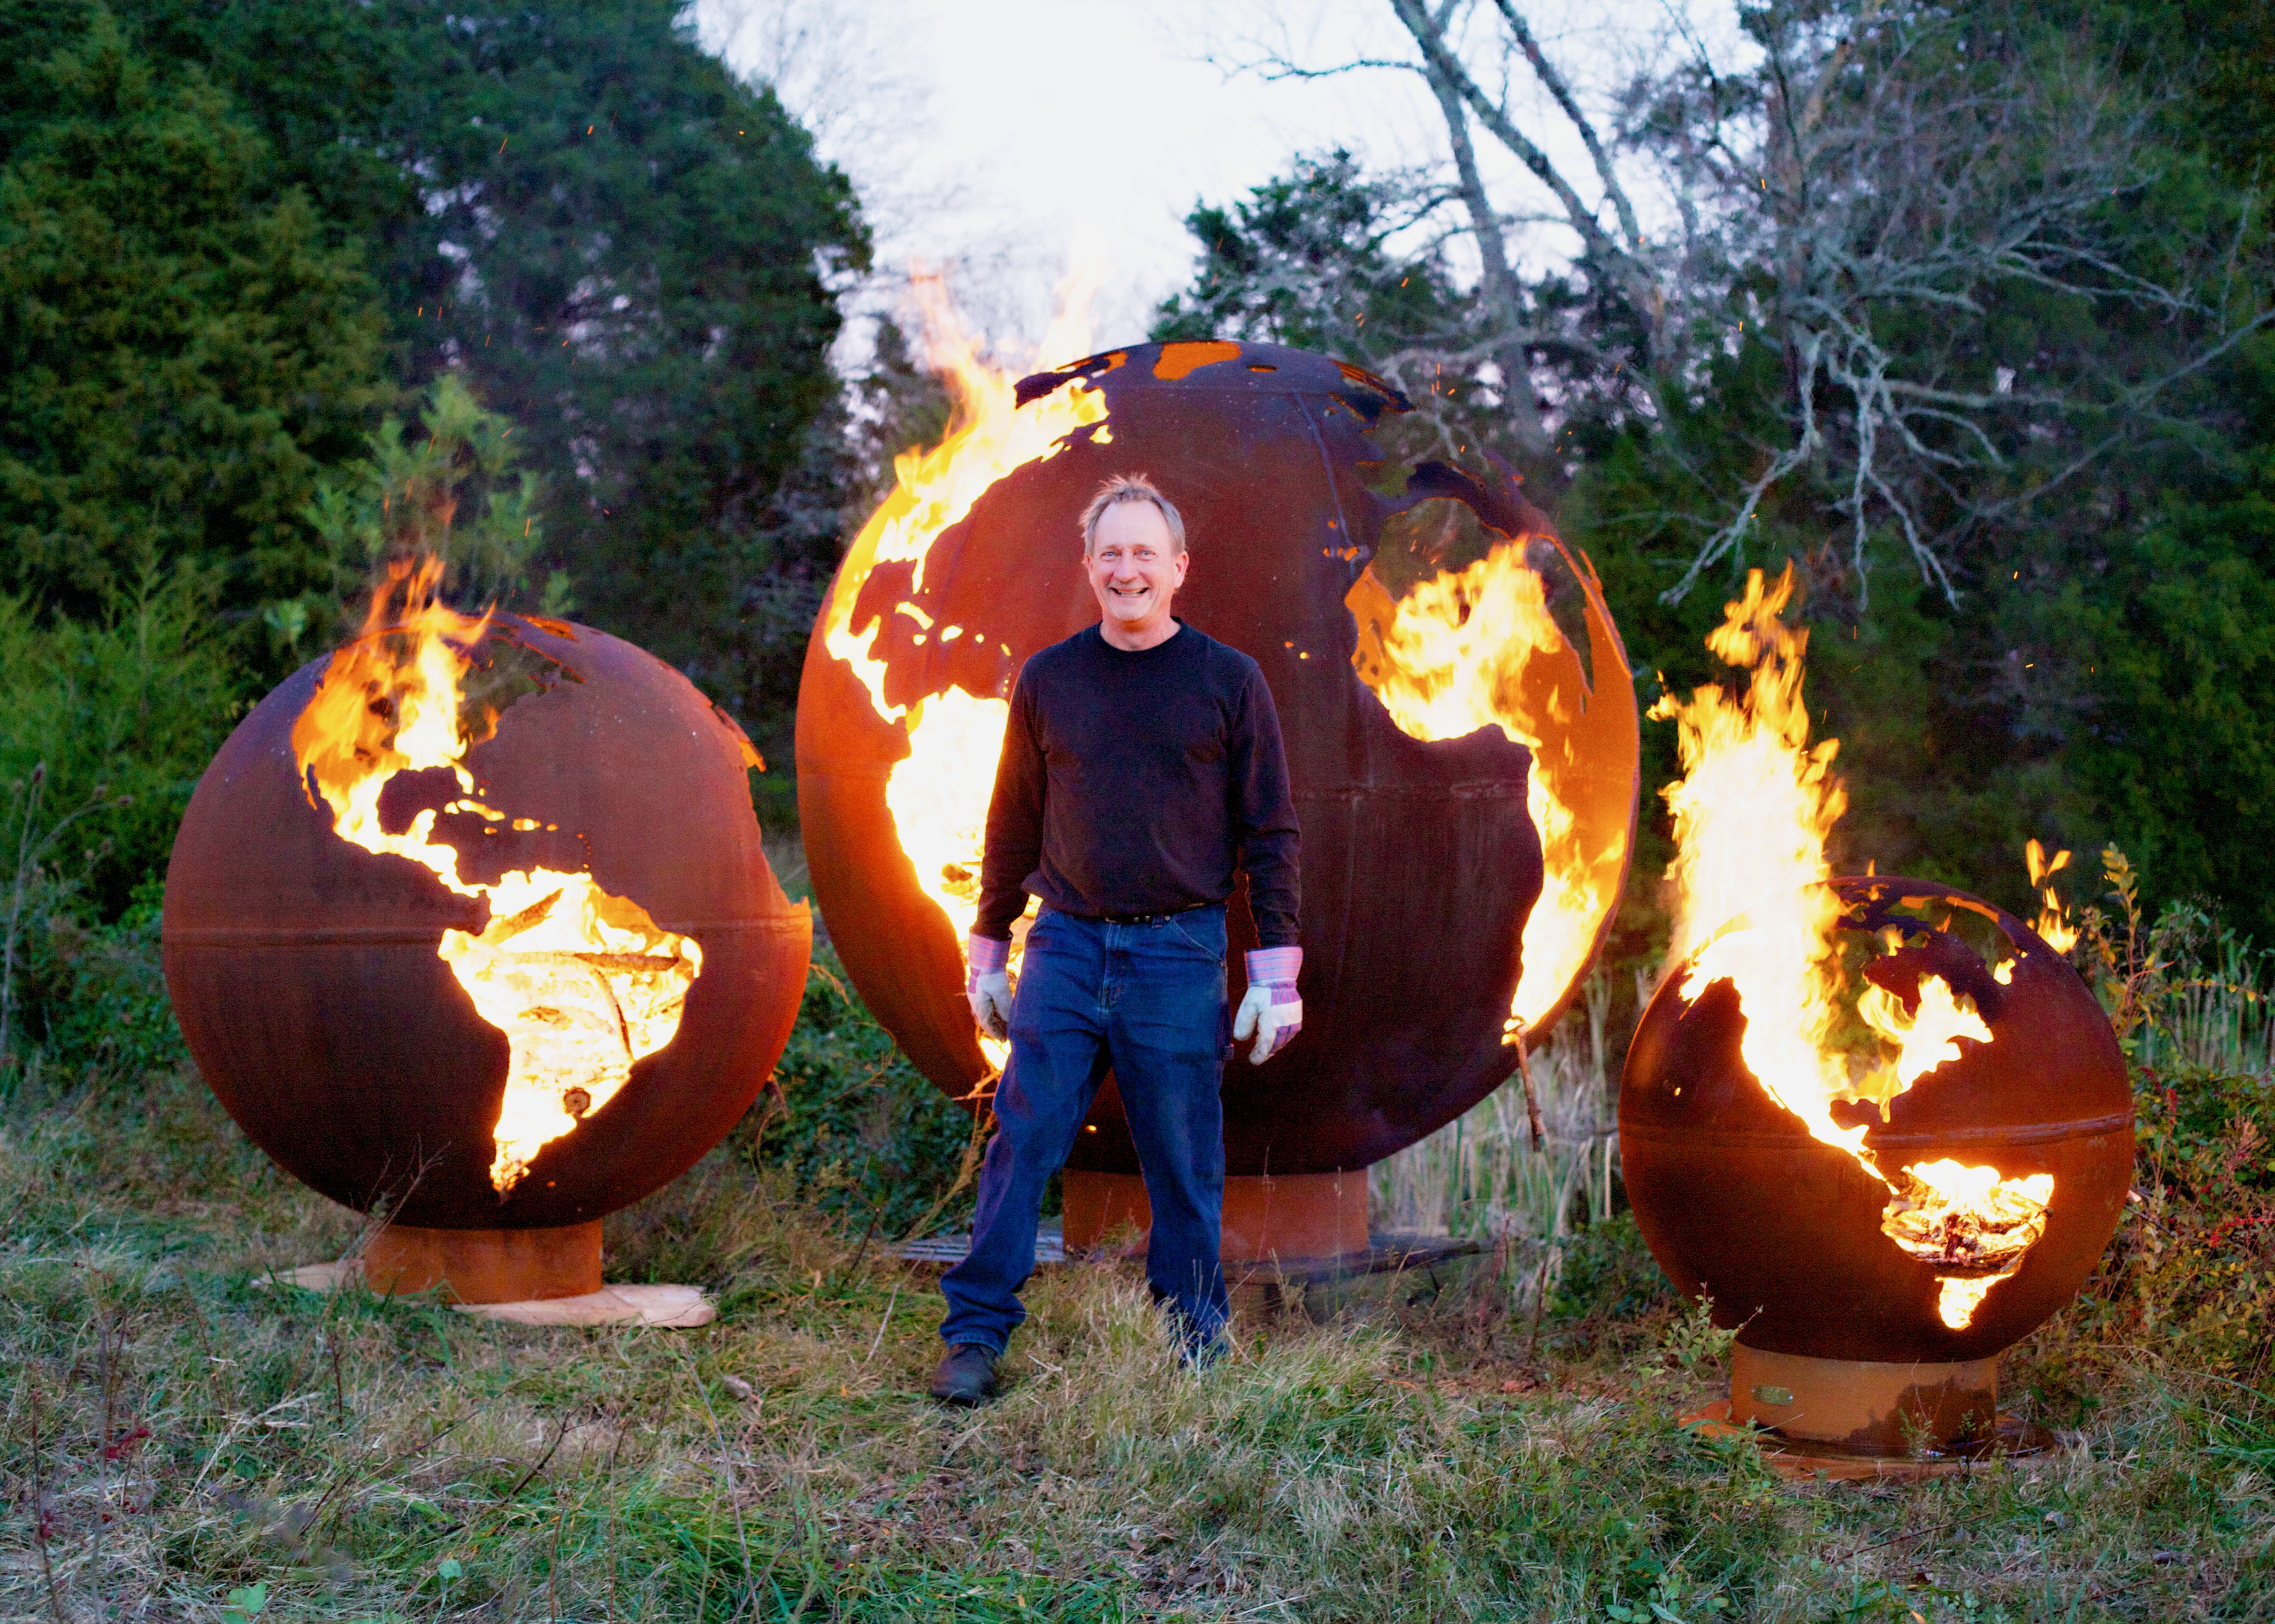 fire pit art. Fire Pit Art® - Handcrafted In Tennessee Art FIREPLACESRUS